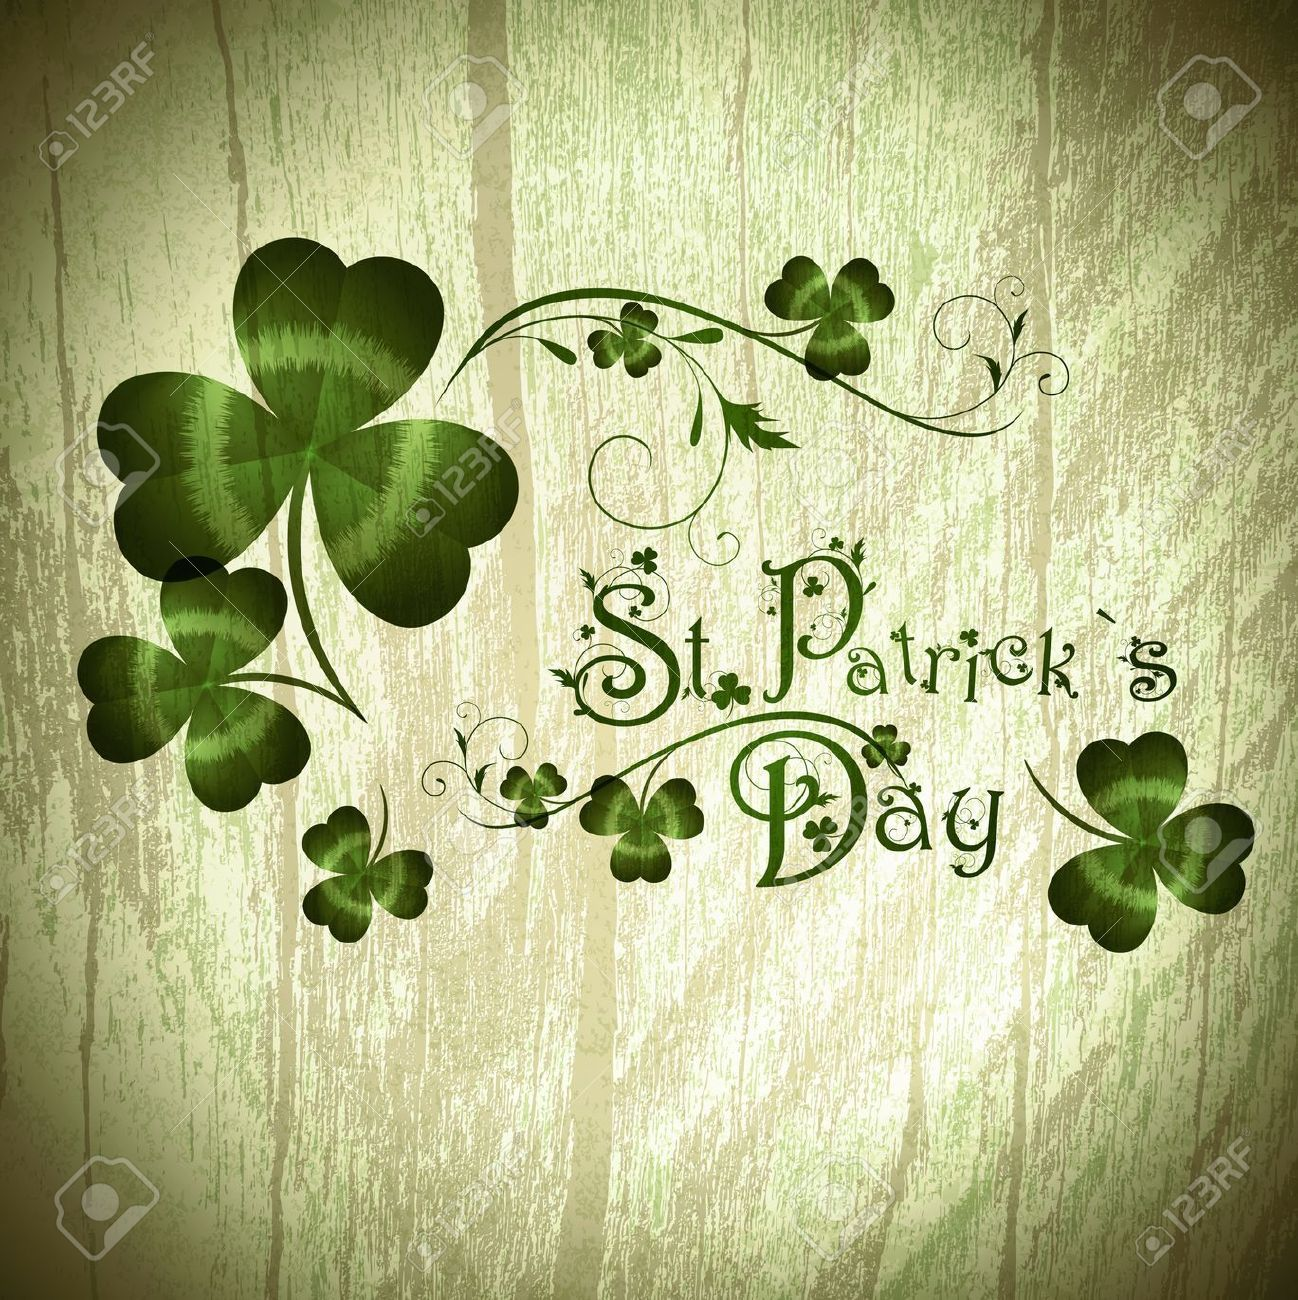 Vintage Wooden Background With St Patrick Day Greeting With Shamrocks St Patricks Day Wallpaper Saint Patricks Day Art St Patricks Day Pictures